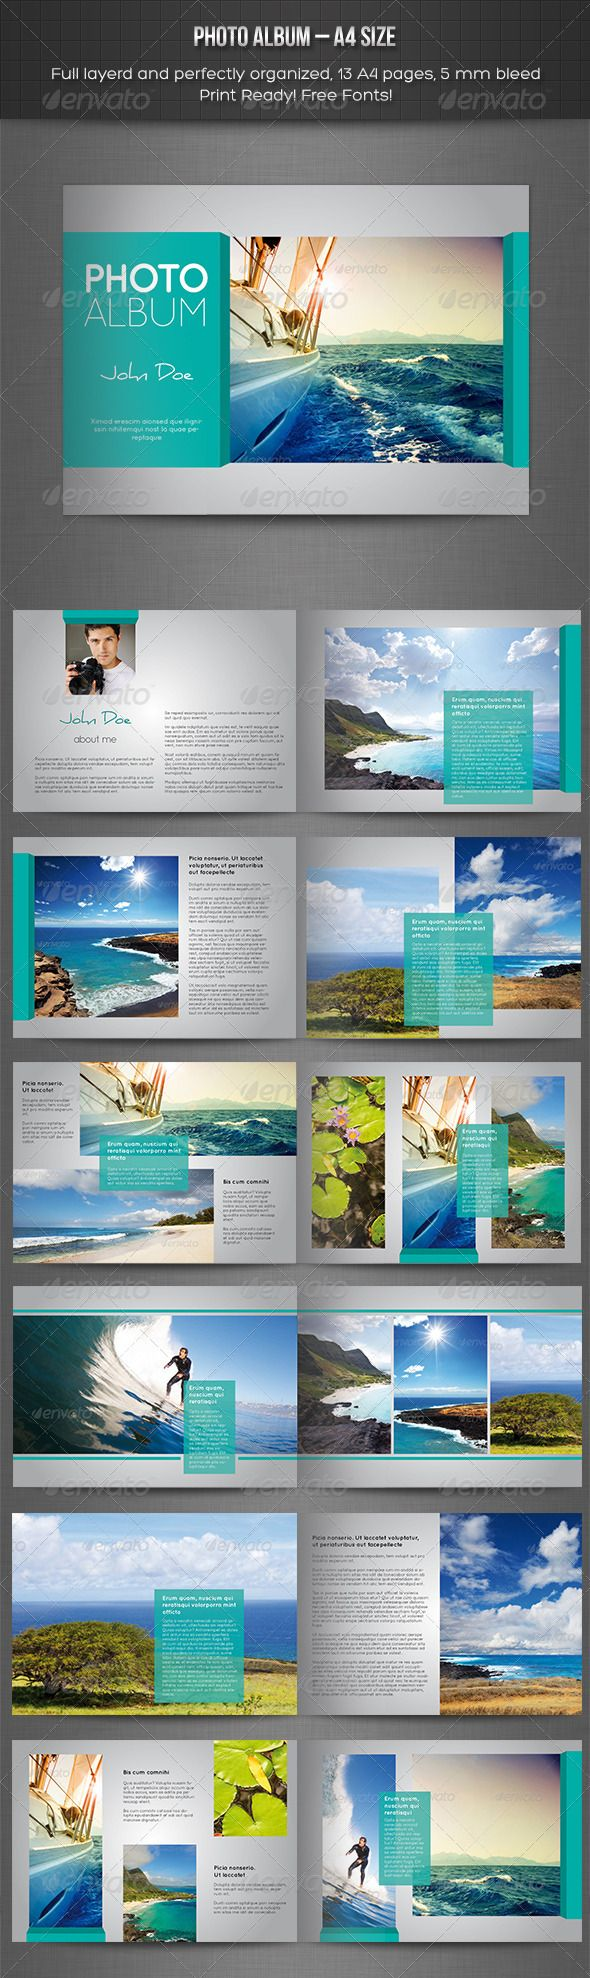 Photo Album – Landscape Template - GraphicRiver Item for Sale ...